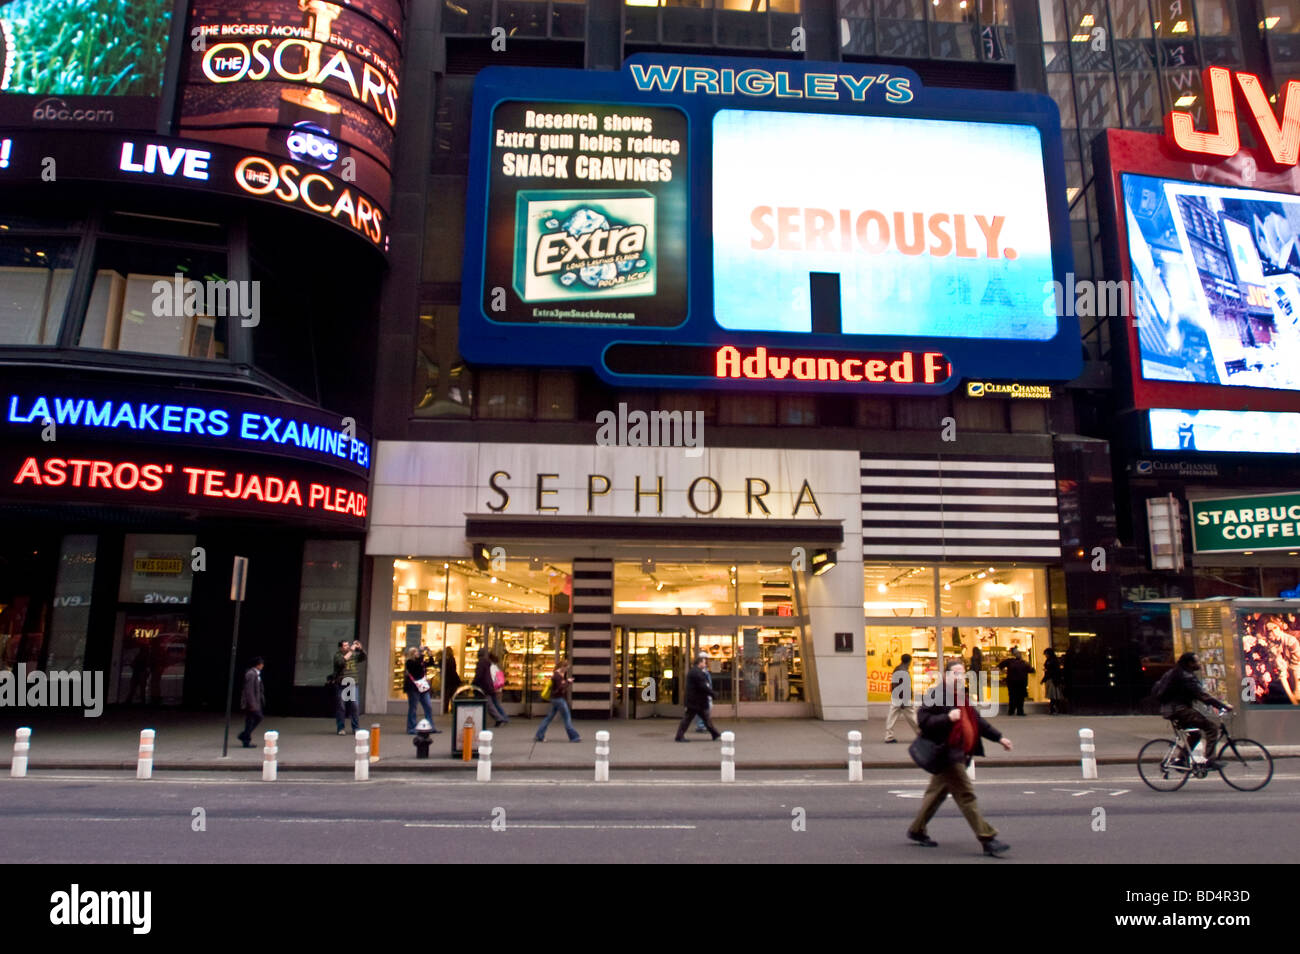 However, online shopping is always a better option in that case. And there will be no worry that a salesperson will encourage you to buy something extra. You control your purchase from start to finish when you shop online. Online shopping is a great experience and a lot of fun when you visit Sephora.